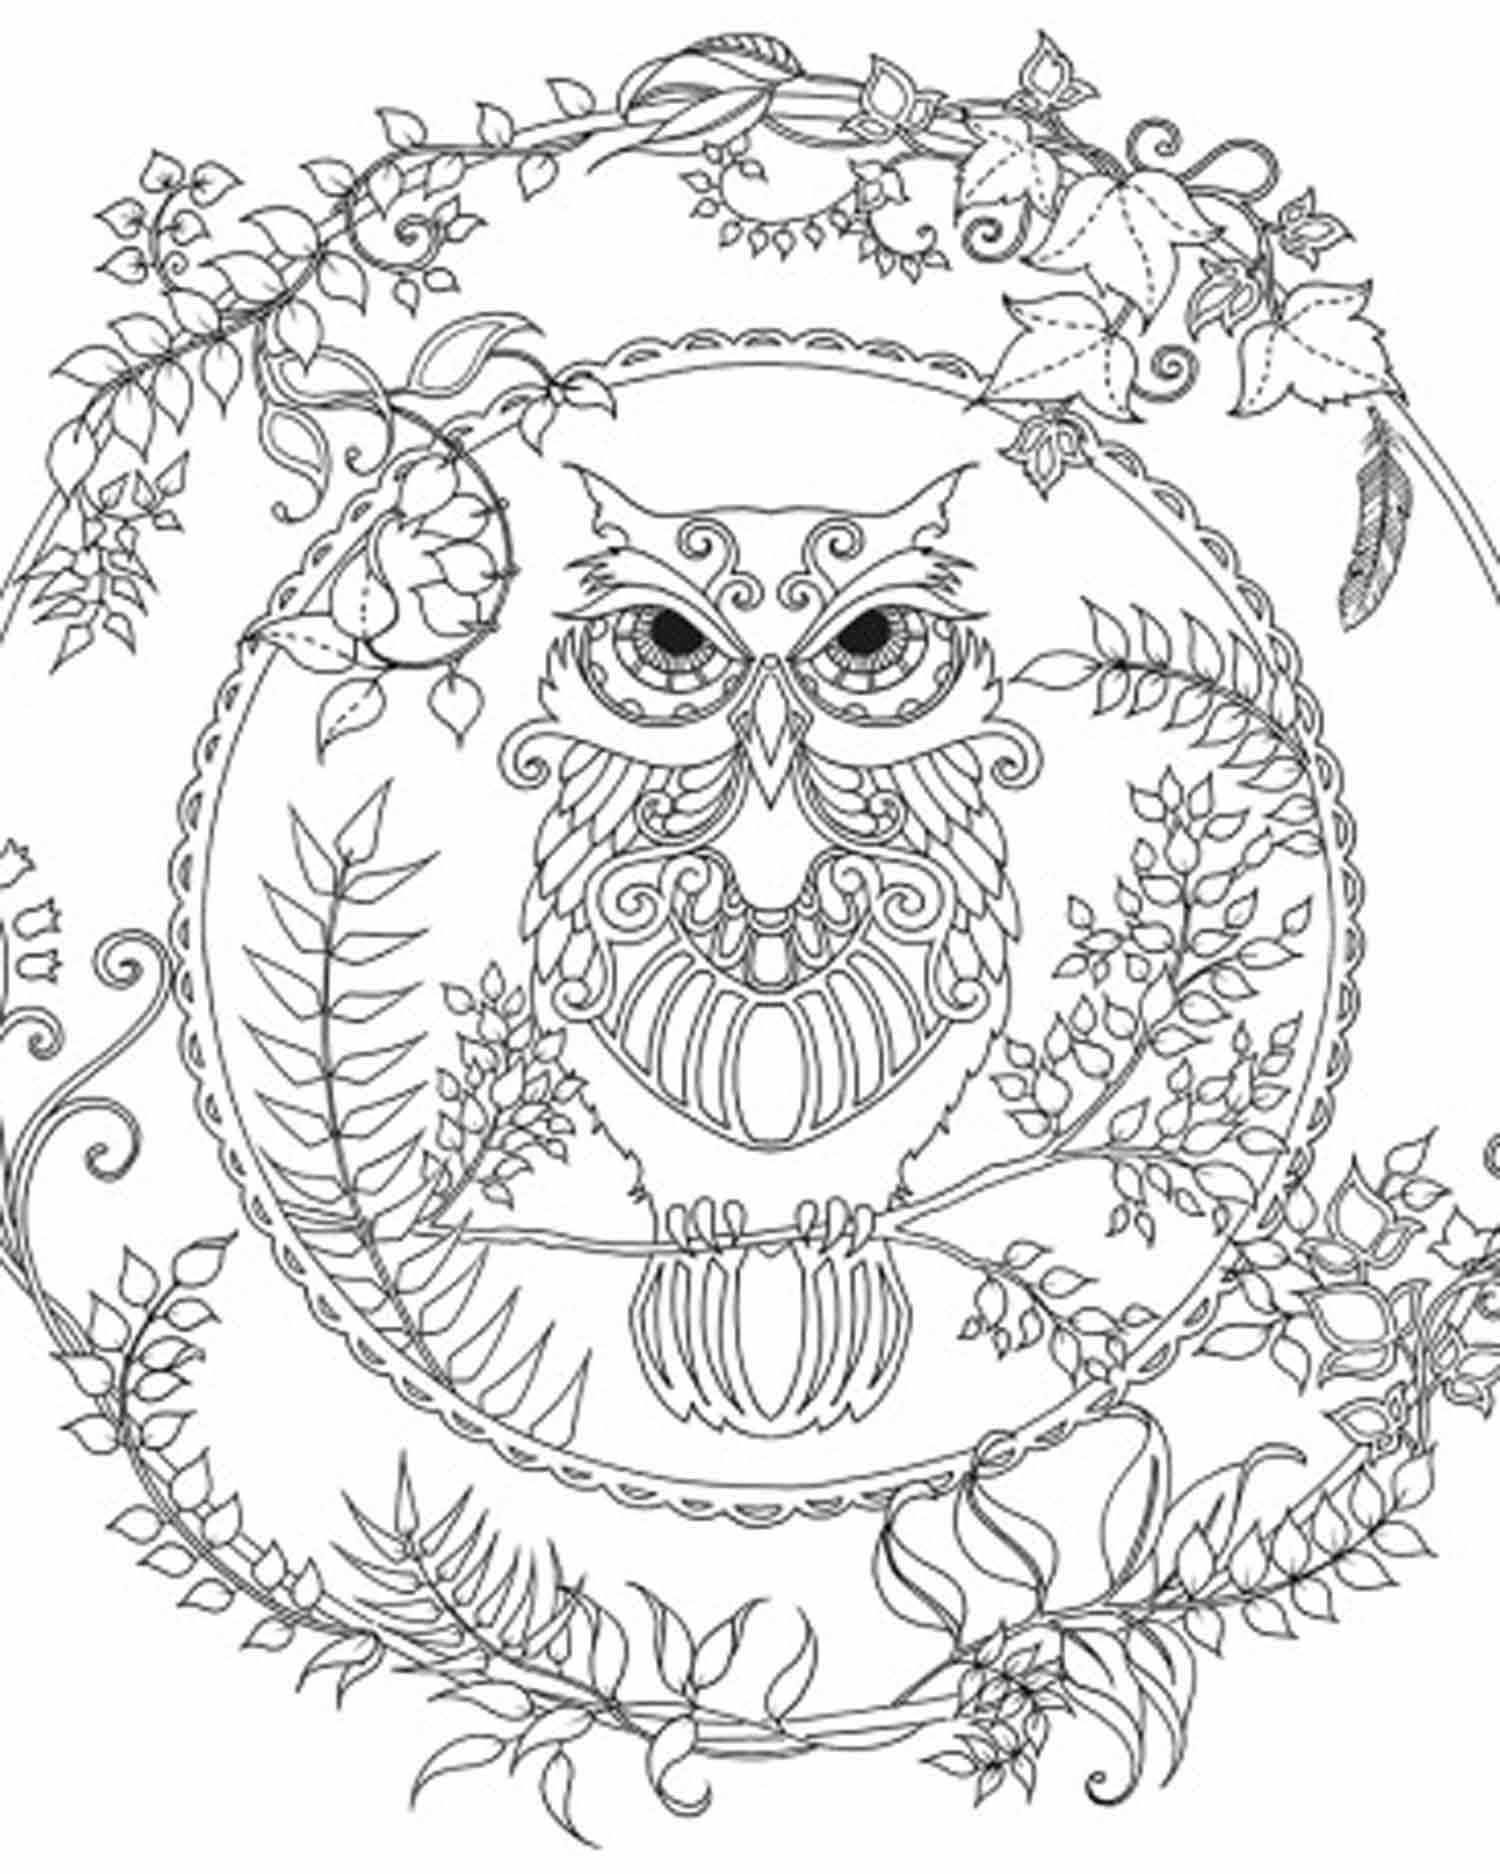 1500x1874 Enchanted Forest Owl Coloring Pages Colouring Adult Detailed